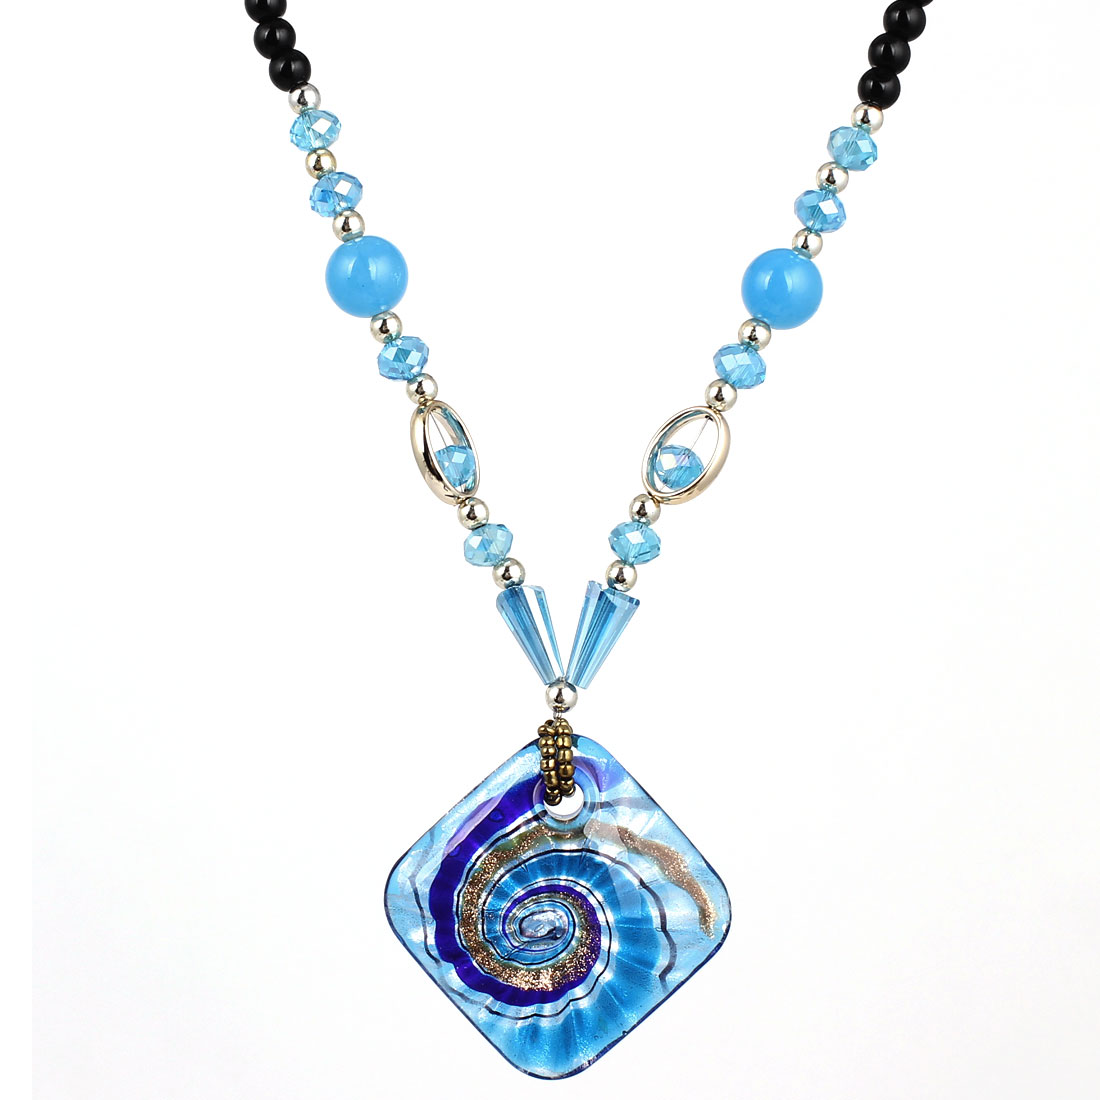 Blue Black Plastic Beaded Neck String Glass Square Pendant Necklace for Woman